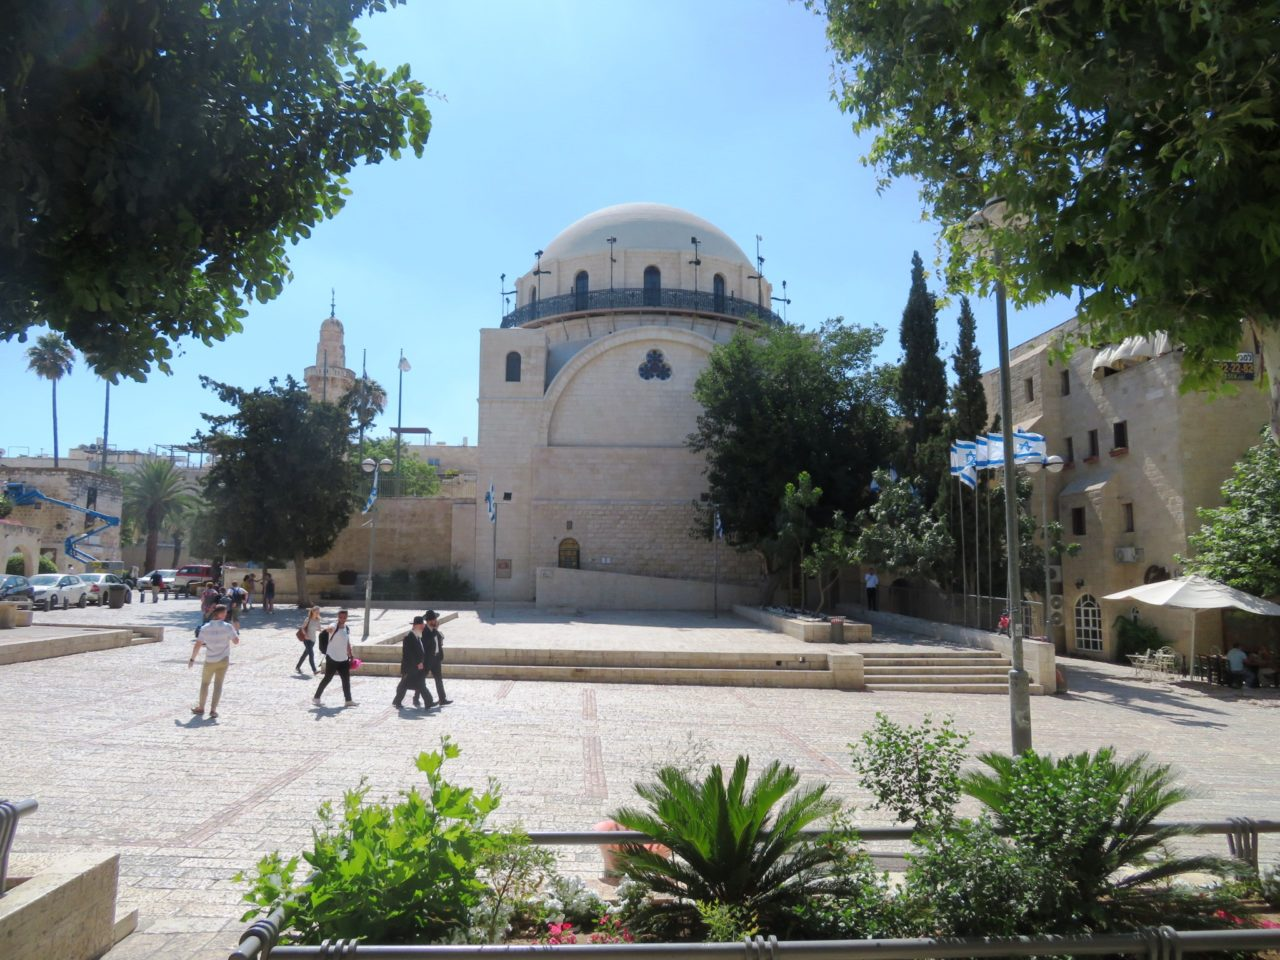 The joys of walking Jerusalem - The Hurva Synagogue in the main square of the Jewish Quarter of the Old City